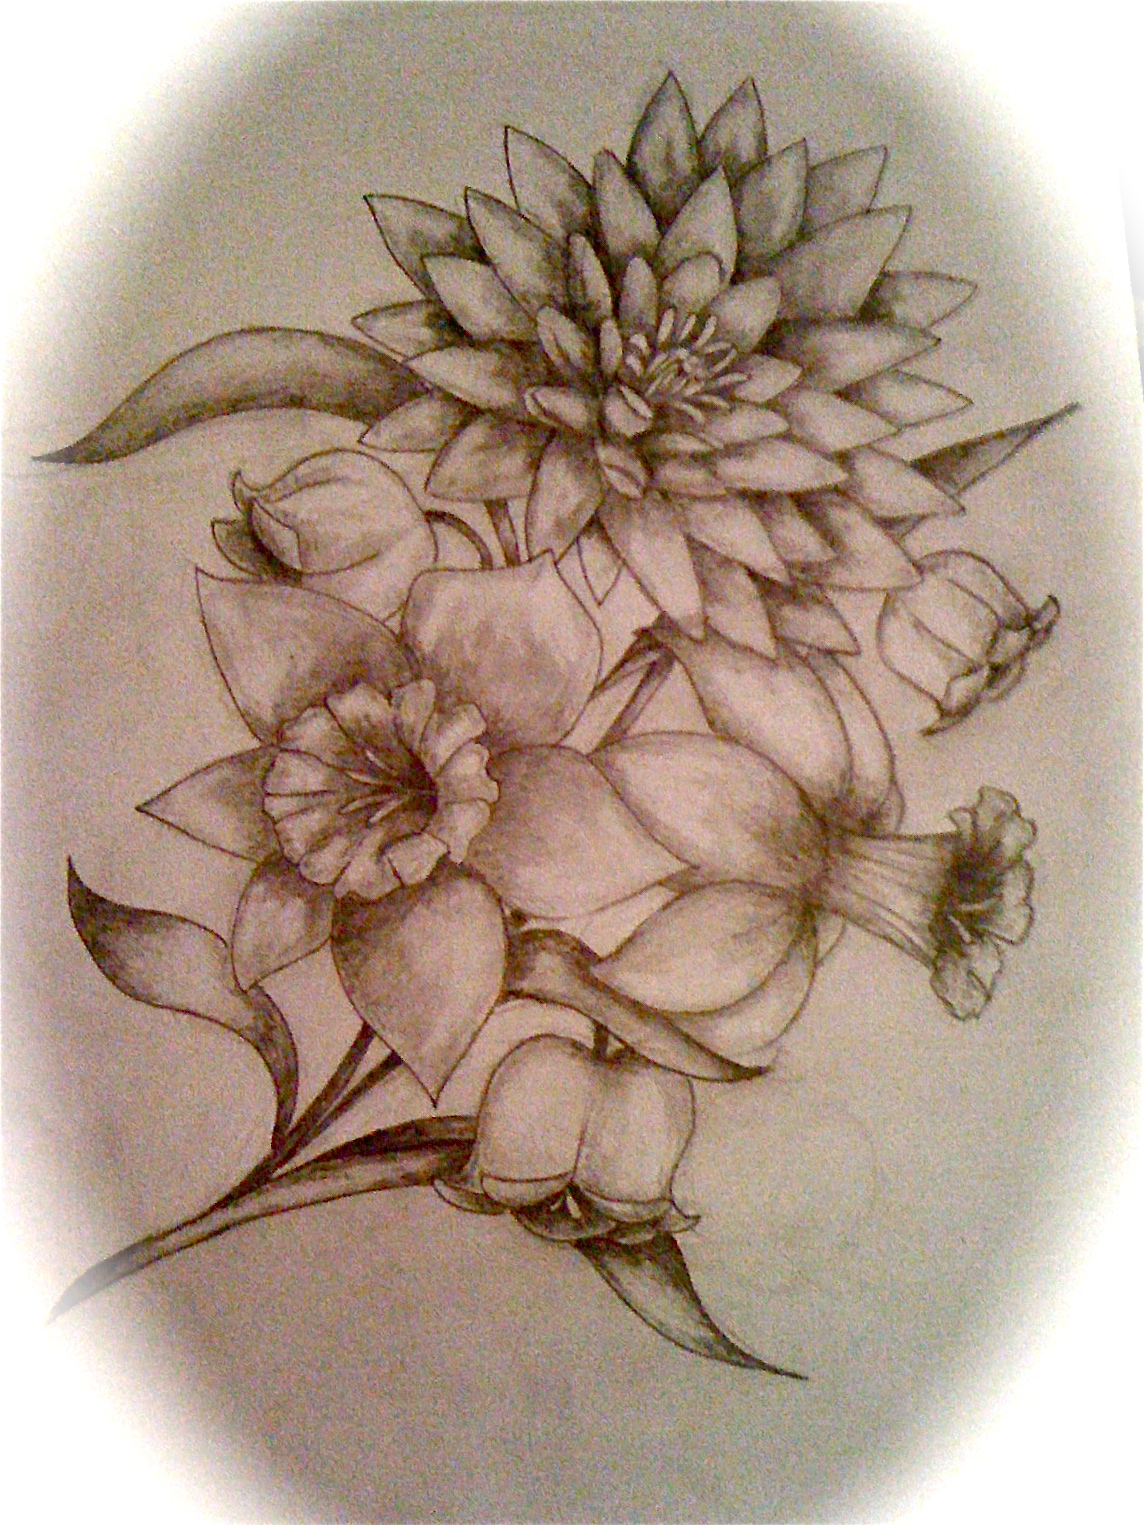 100 july flower tattoo tattoo of flowers u2013 blackwork flora flower u2013 addflash org. Black Bedroom Furniture Sets. Home Design Ideas